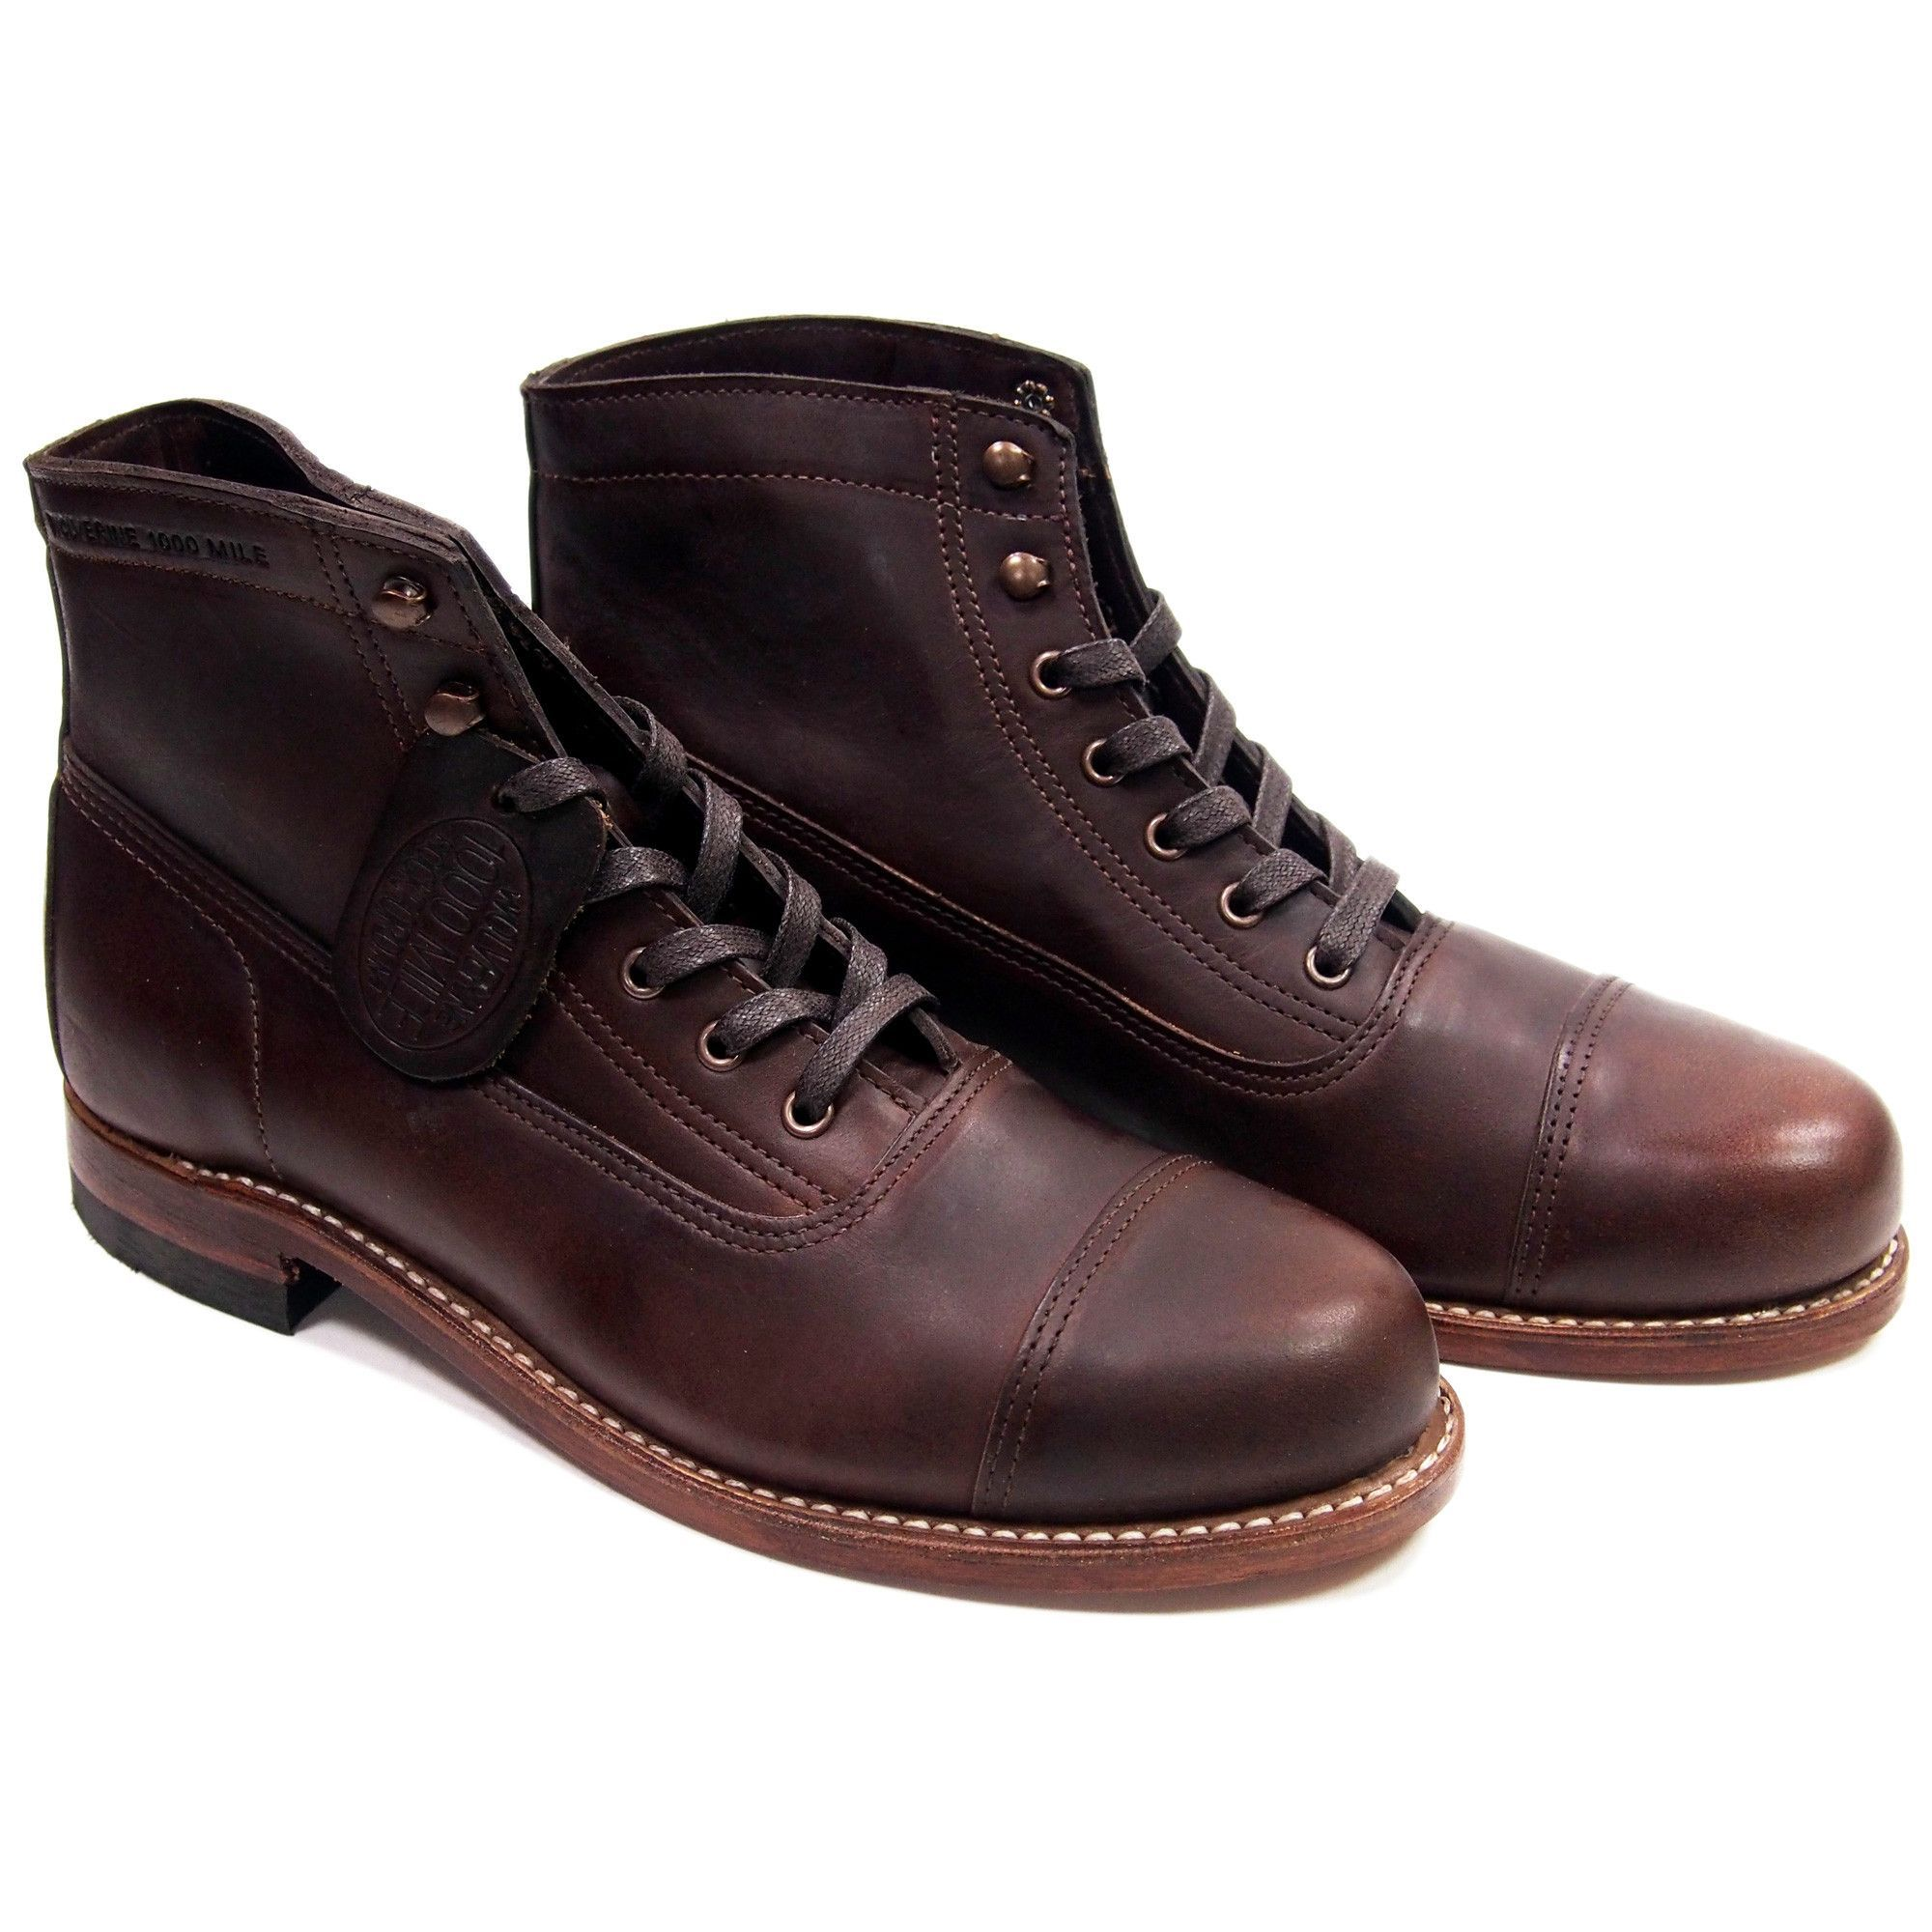 7995a3b9833 Wolverine Rockford 1000 Mile Cap Toe Boots - Brown - Made in USA ...